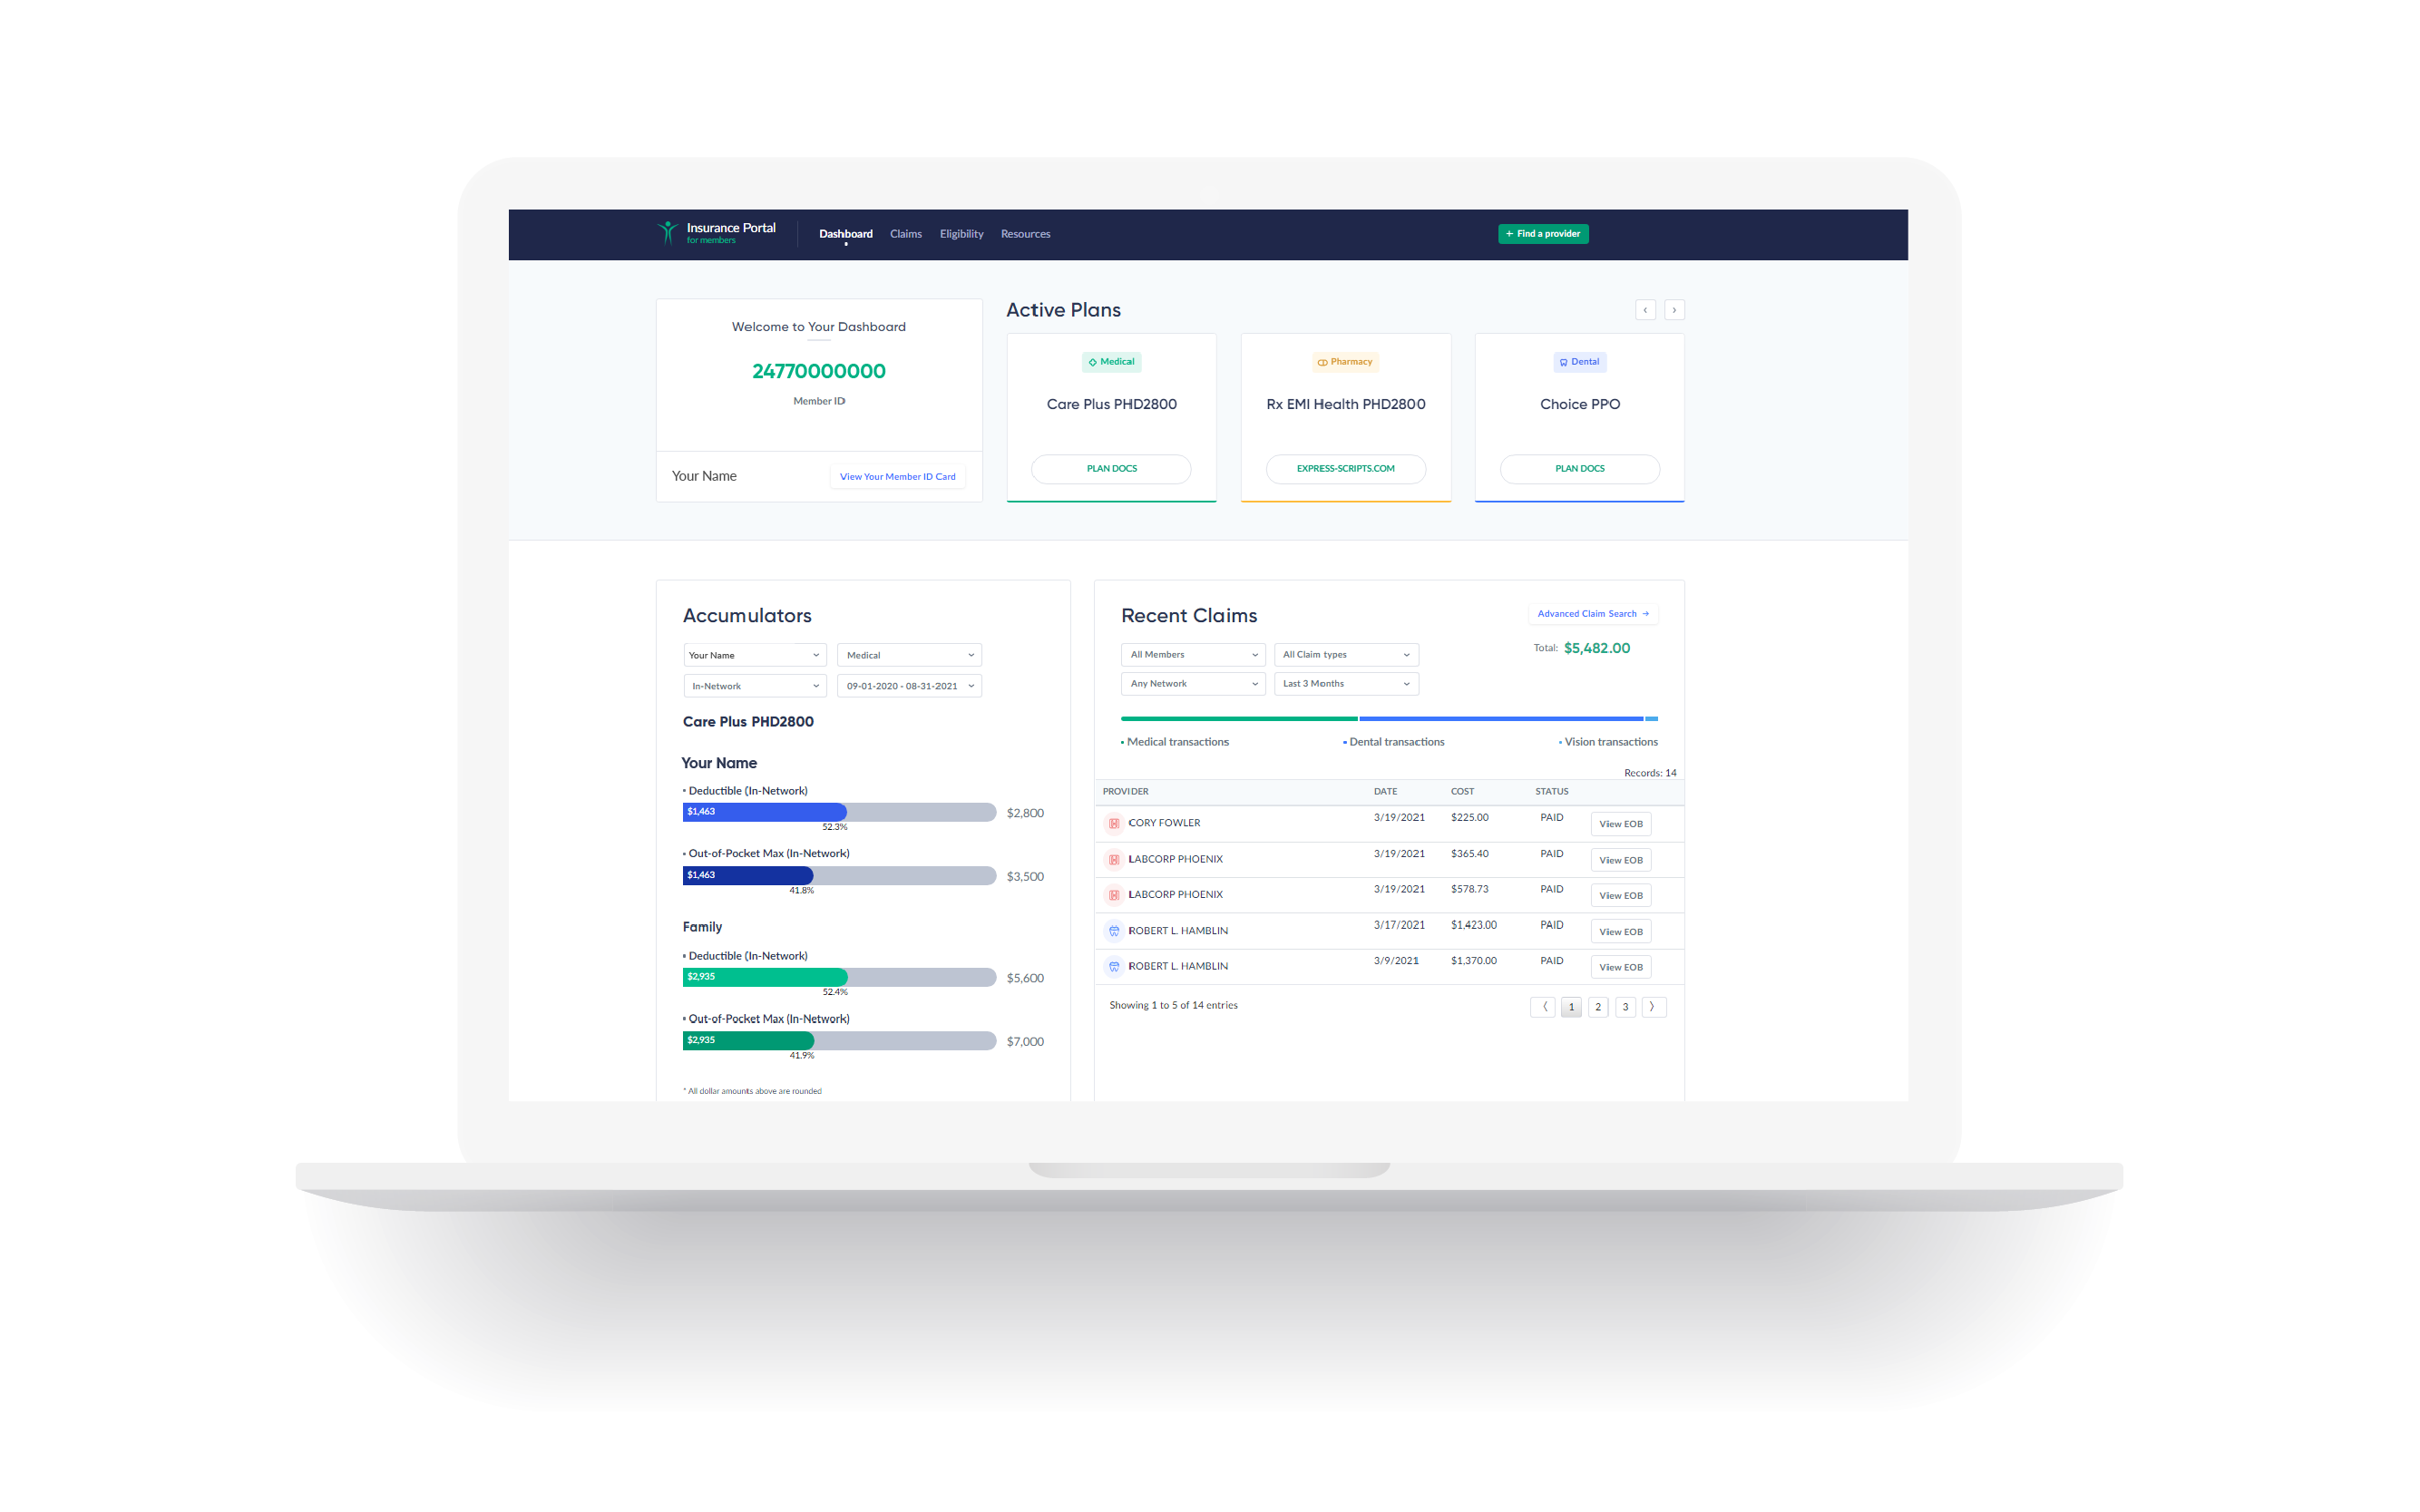 New website-dashboard overview